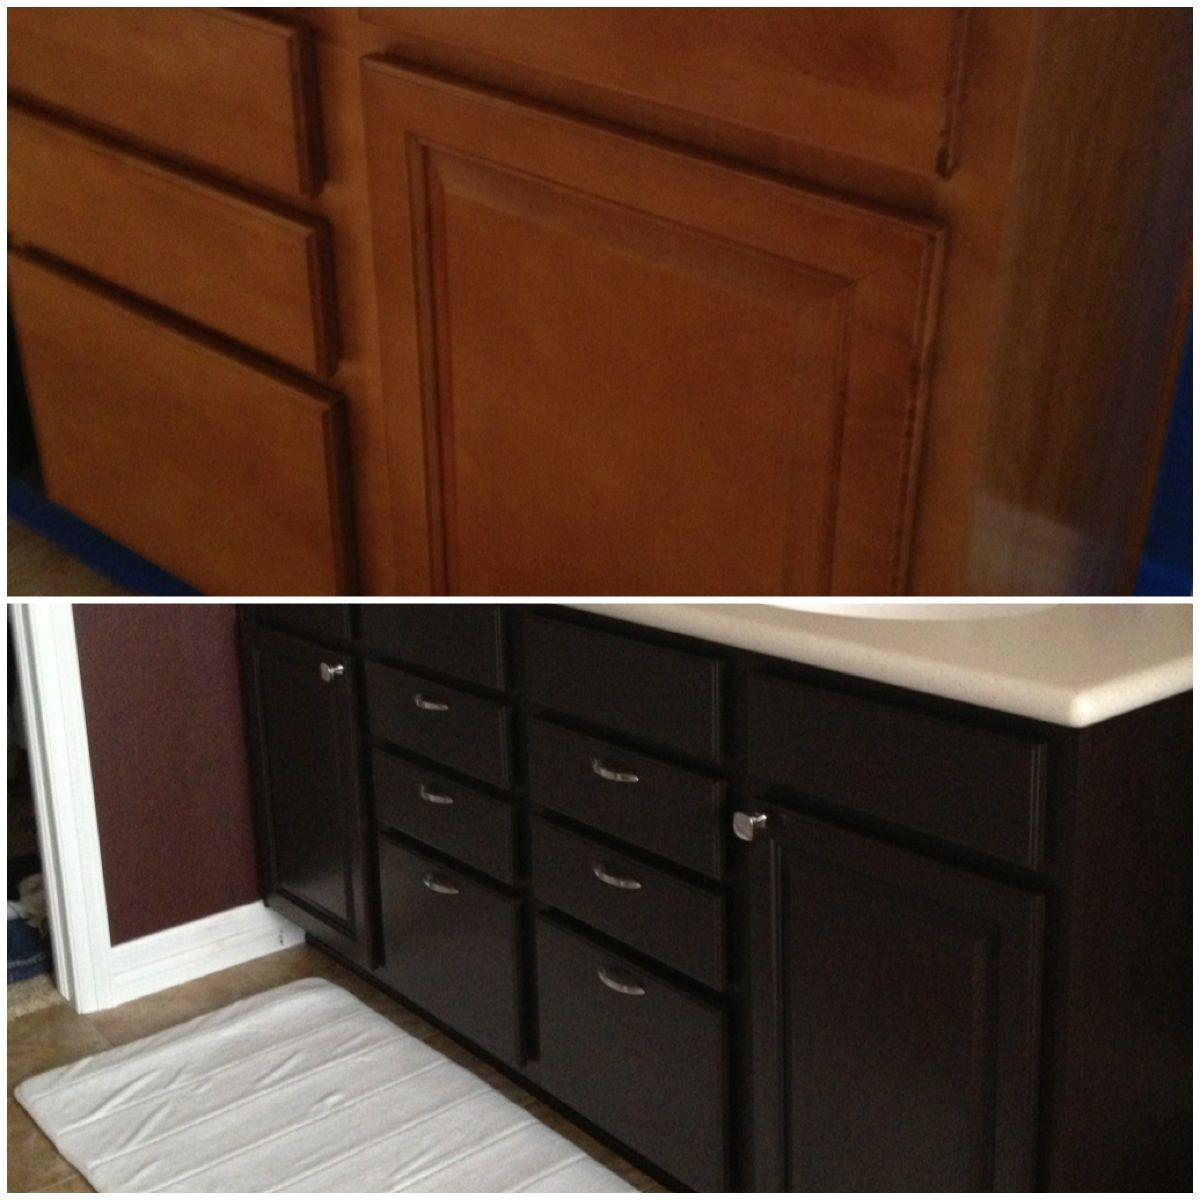 Gel Stain Kitchen Cabinets Espresso: Before And After. I Used General Finishes Java Gel Stain